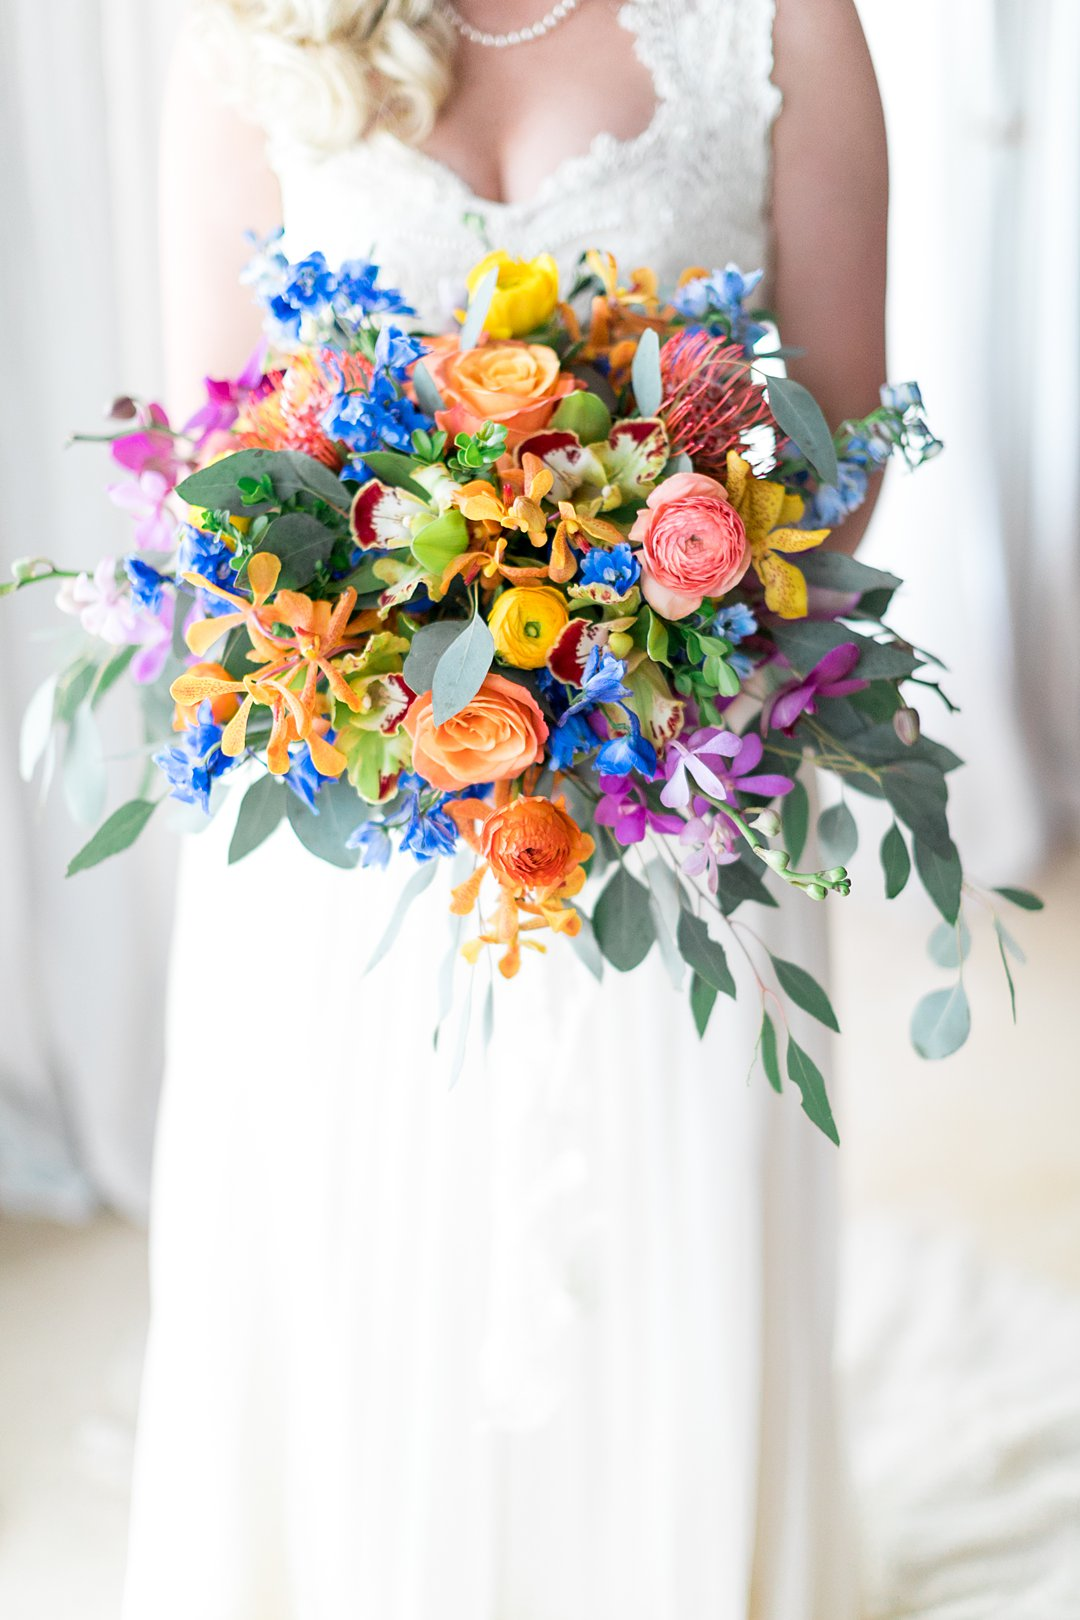 Bride poses with the biggest oversized bridal bouquet with tropical colors and tropical orchids, pin cushion and ranunculus flowers with blue flowers.